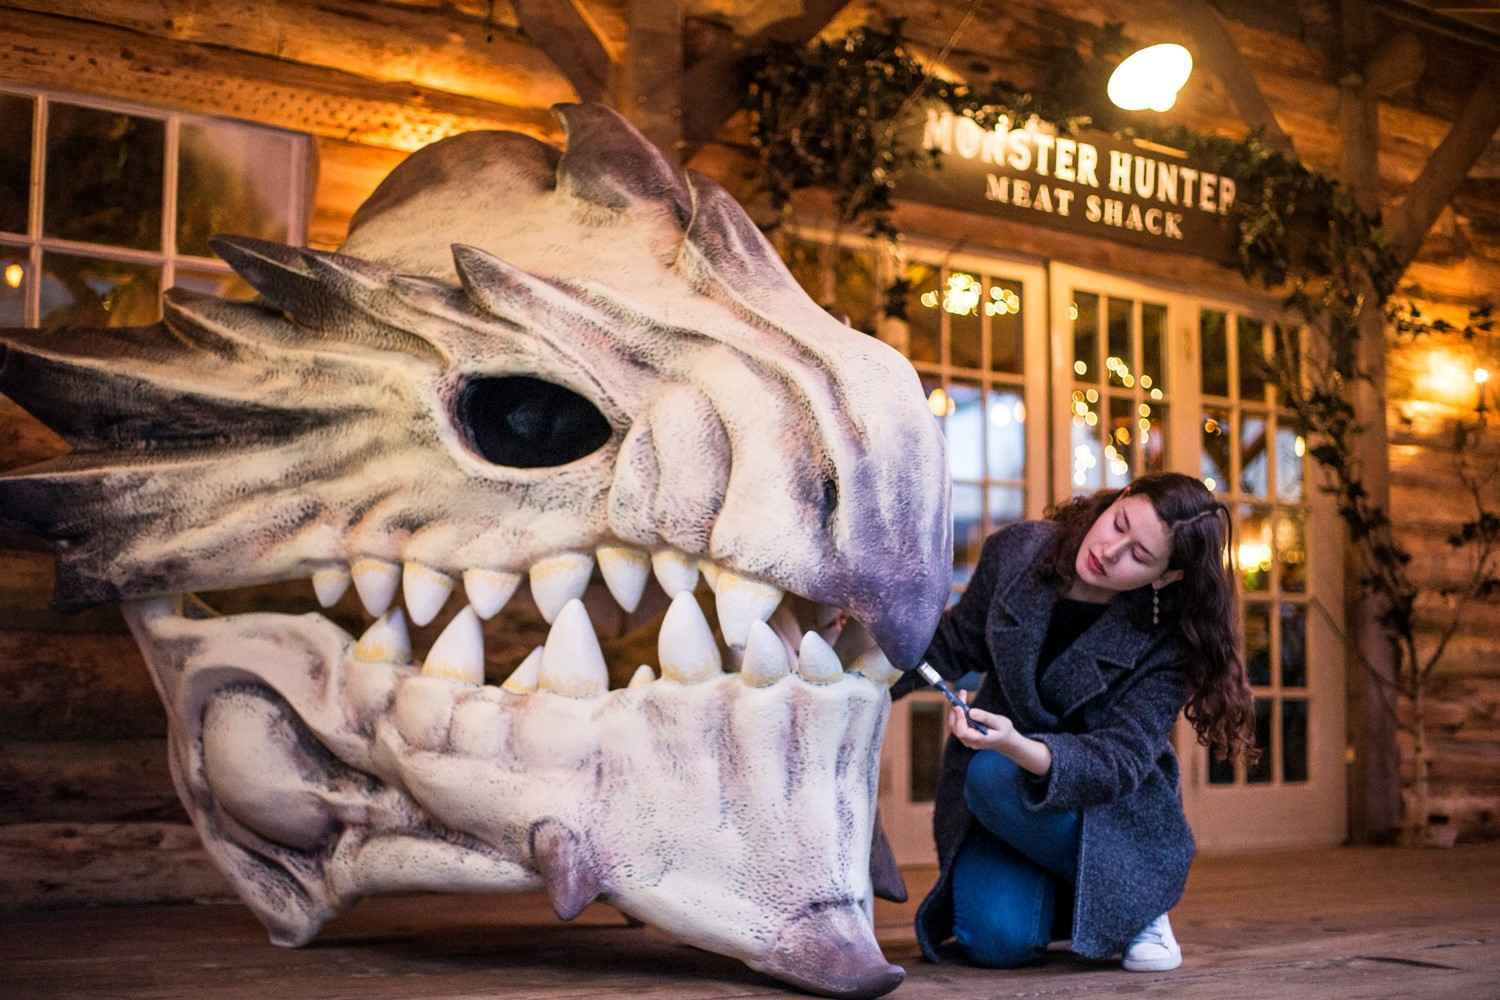 Monster Hunter World Meat Shack Opens For Those With The